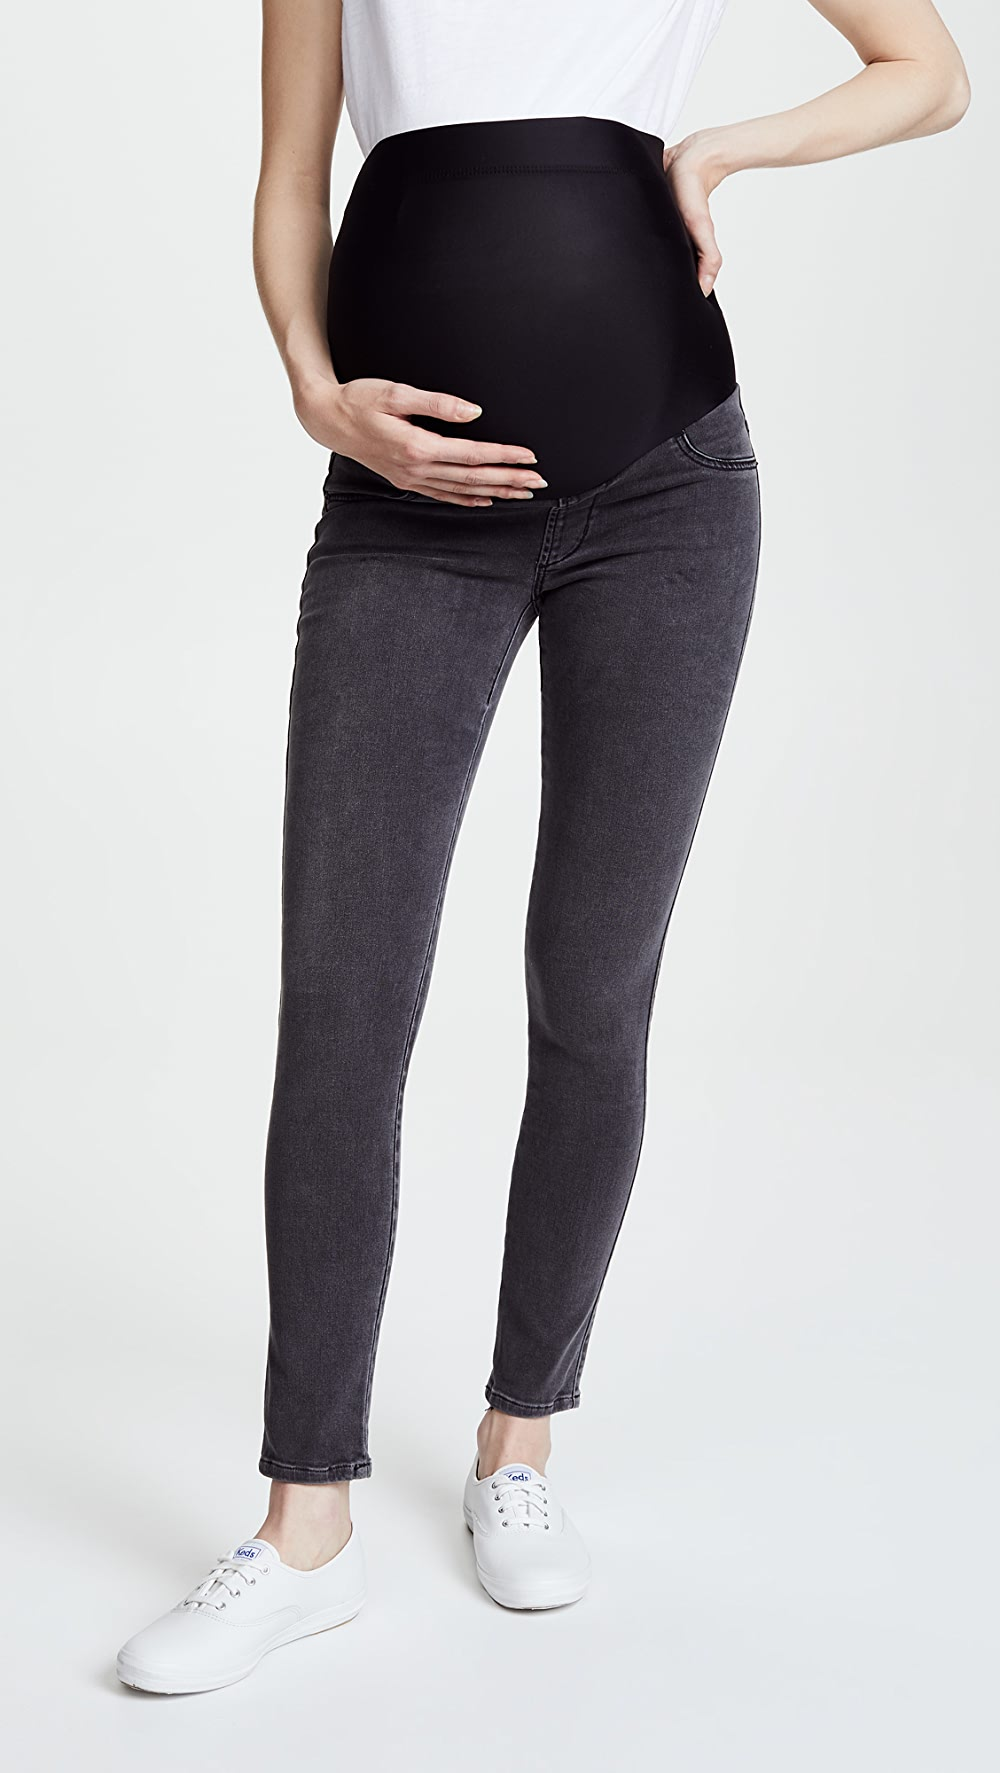 Aspiring James Jeans - Twiggy 5 Pocket Maternity Jeans To Be Highly Praised And Appreciated By The Consuming Public